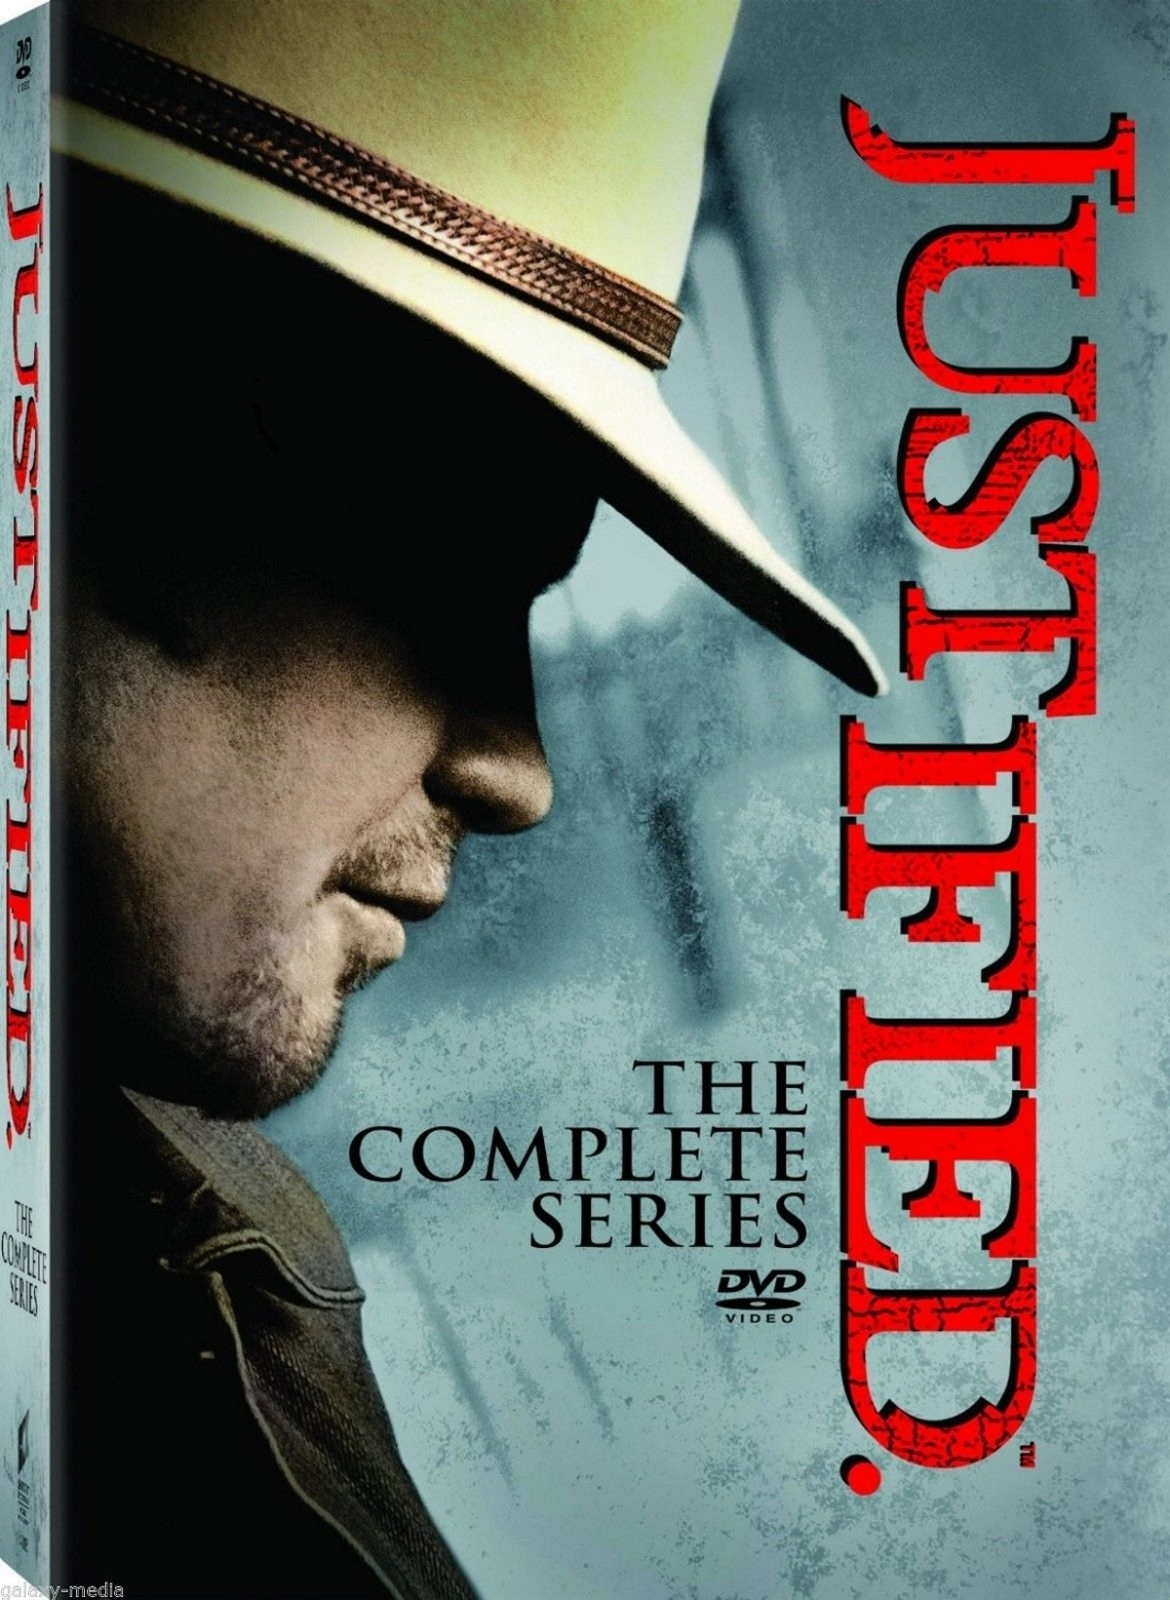 Justified Complete Series Box Set Season One-Six 1-6 (DVD, 2015) 1 2 3 4 5 6